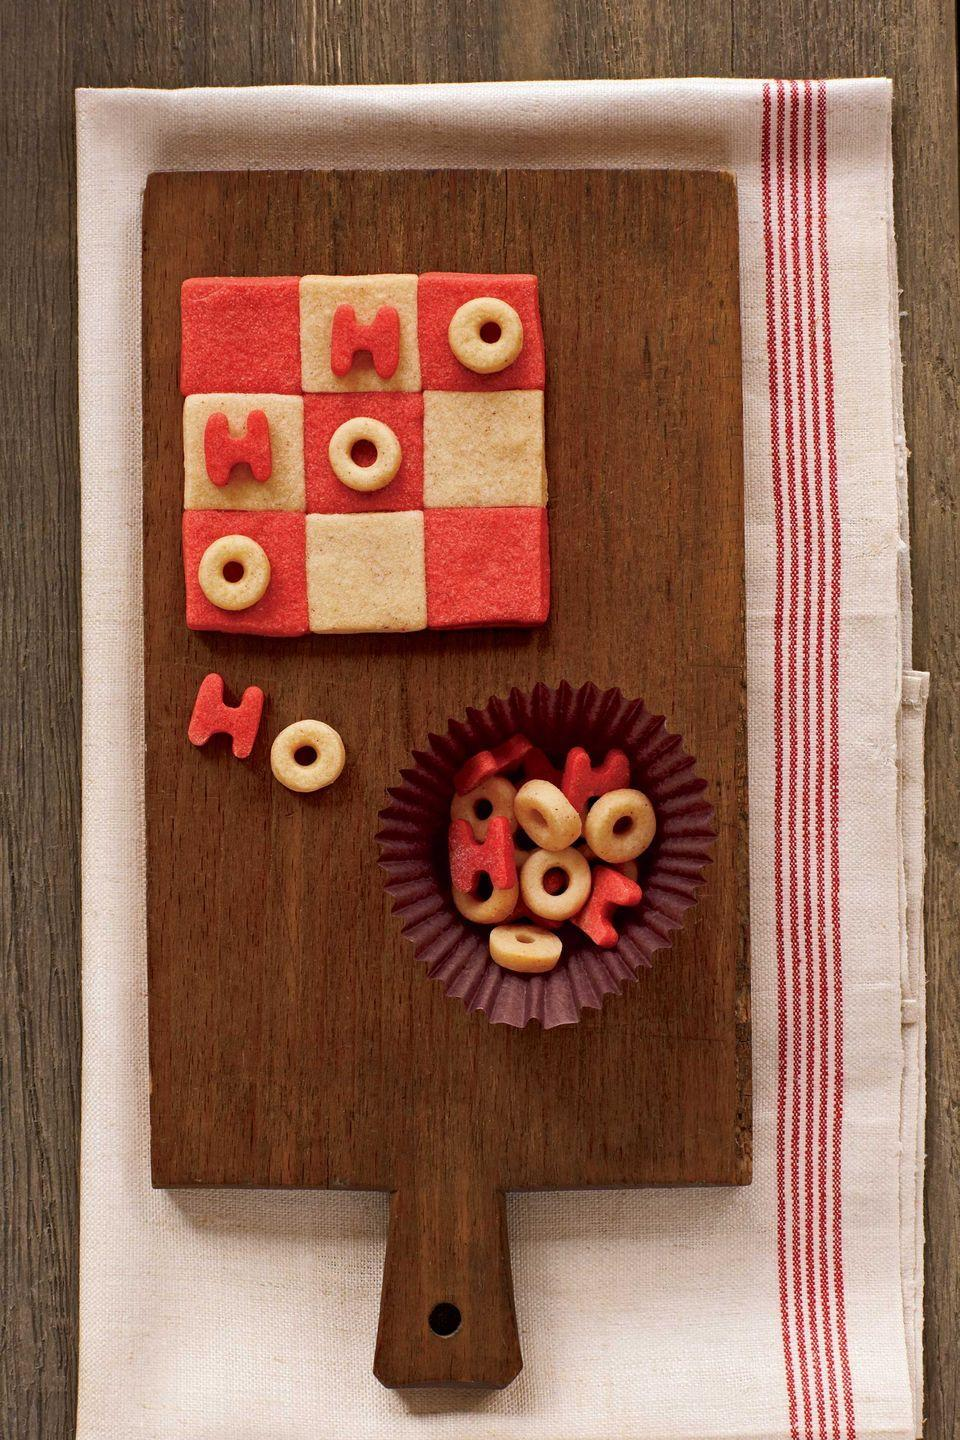 """<p>Begin by pressing together nine 1 1/4-inch squares of dough to make the tic-tac-toe game board, and cut out plenty of <em>H</em>s and <em>O</em>s. The tiny letters will bake very quickly, so keep watch to prevent them from overbrowning.</p><p><strong><a href=""""https://www.countryliving.com/food-drinks/recipes/a2022/sugar-cookie-dough-clv1207/"""" rel=""""nofollow noopener"""" target=""""_blank"""" data-ylk=""""slk:Get the recipe"""" class=""""link rapid-noclick-resp"""">Get the recipe</a>.</strong></p>"""